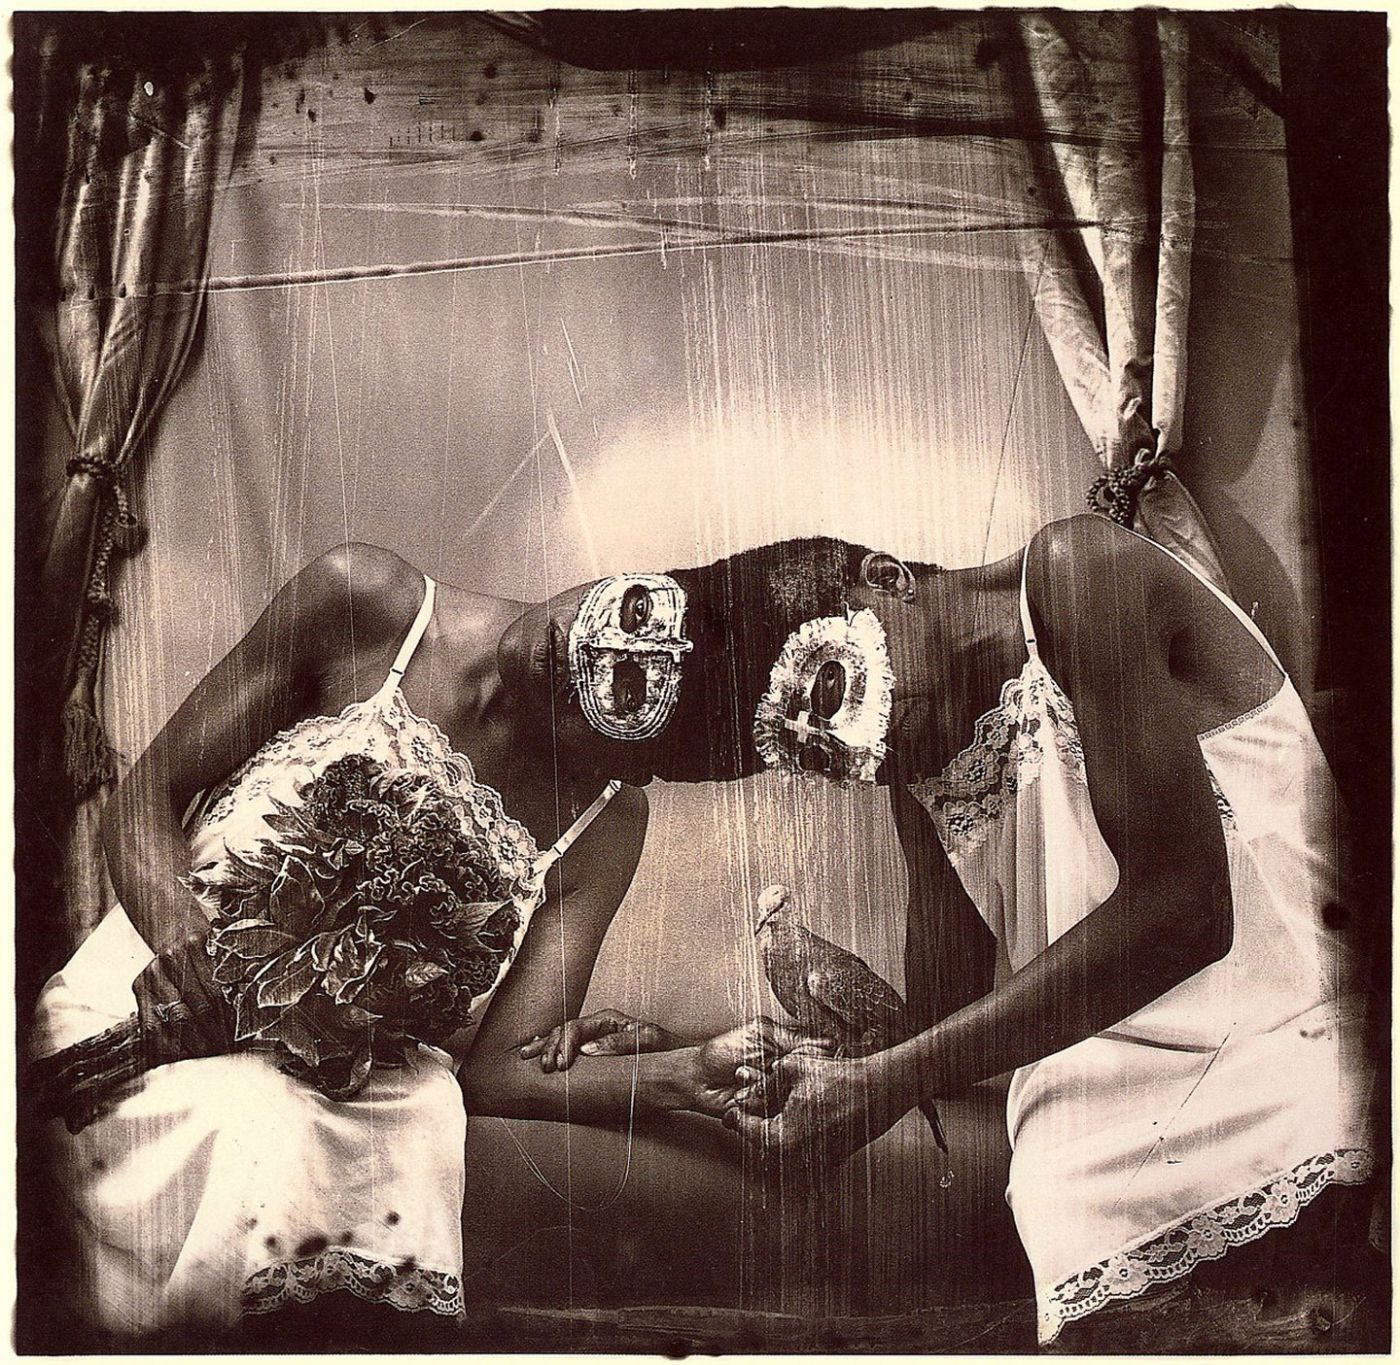 joel peter witkin essay There's no denying that the theatrical photographs of joel-peter witkin have achieved a certain popularity, or at least notoriety over the last two decades, mr witkin's arch tableaux mr celant, in his catalogue essay.